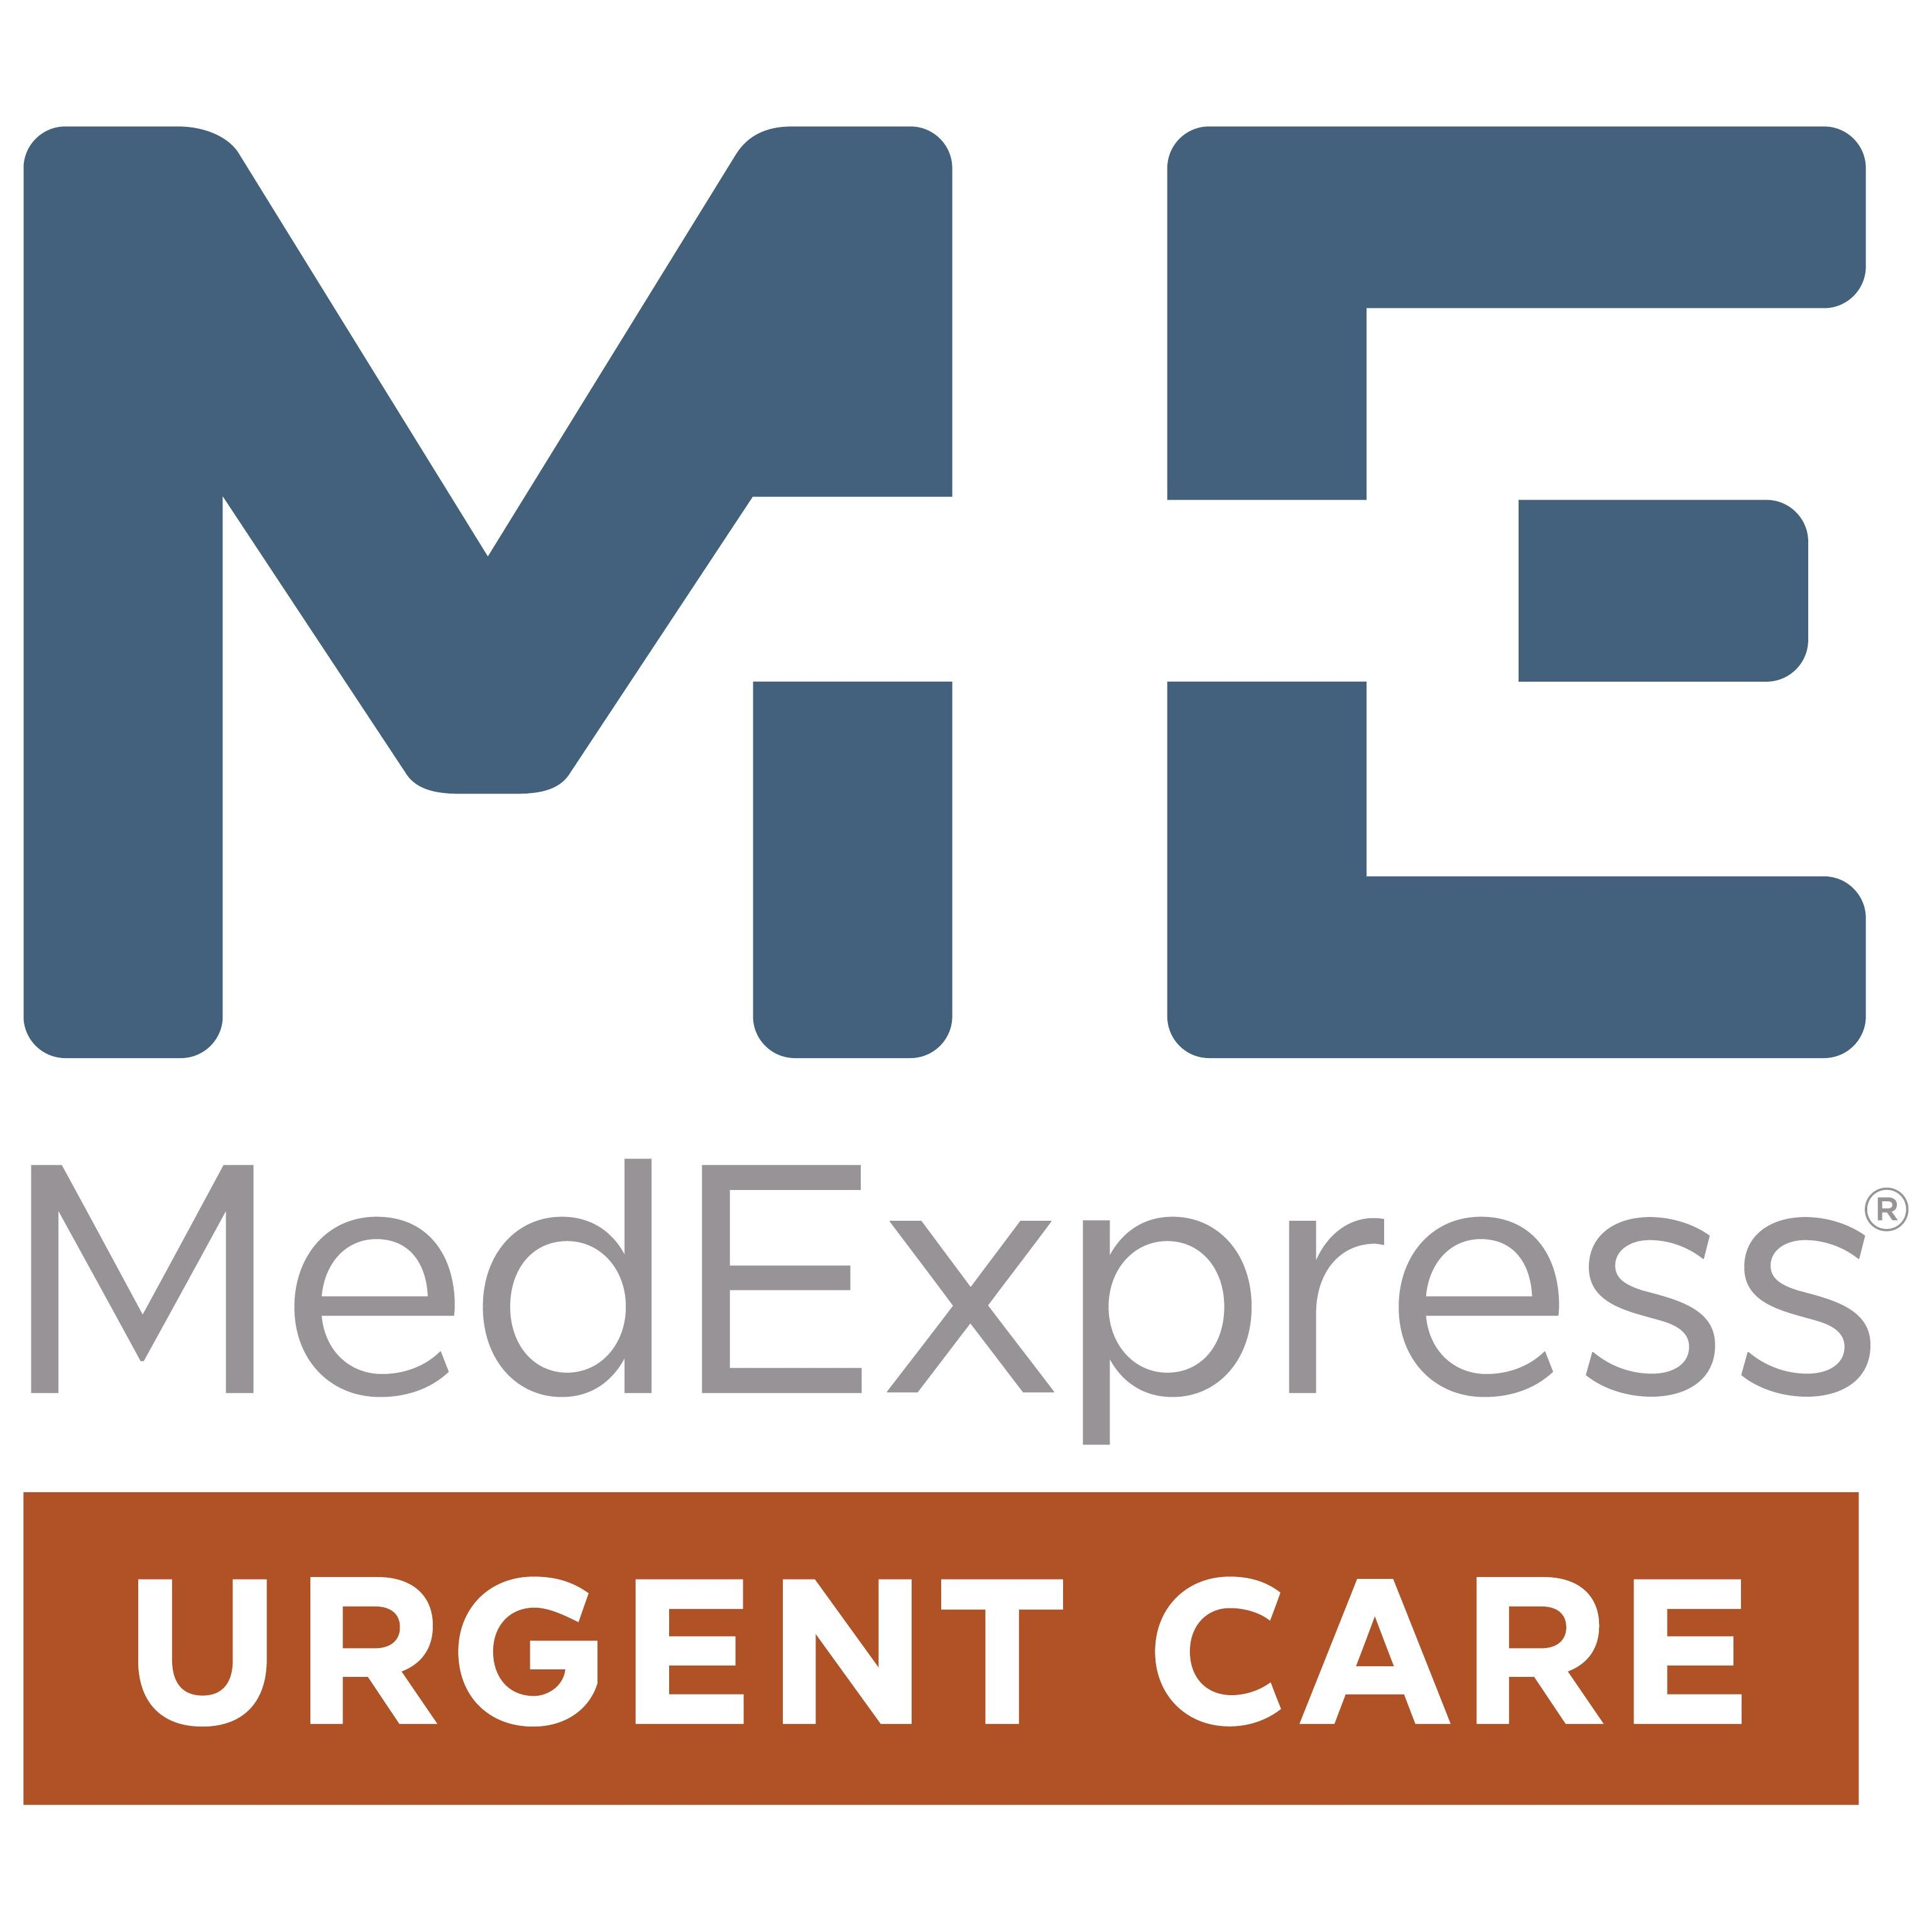 MedExpress Urgent Care - Clewiston, FL 33440 - (863)805-0189 | ShowMeLocal.com